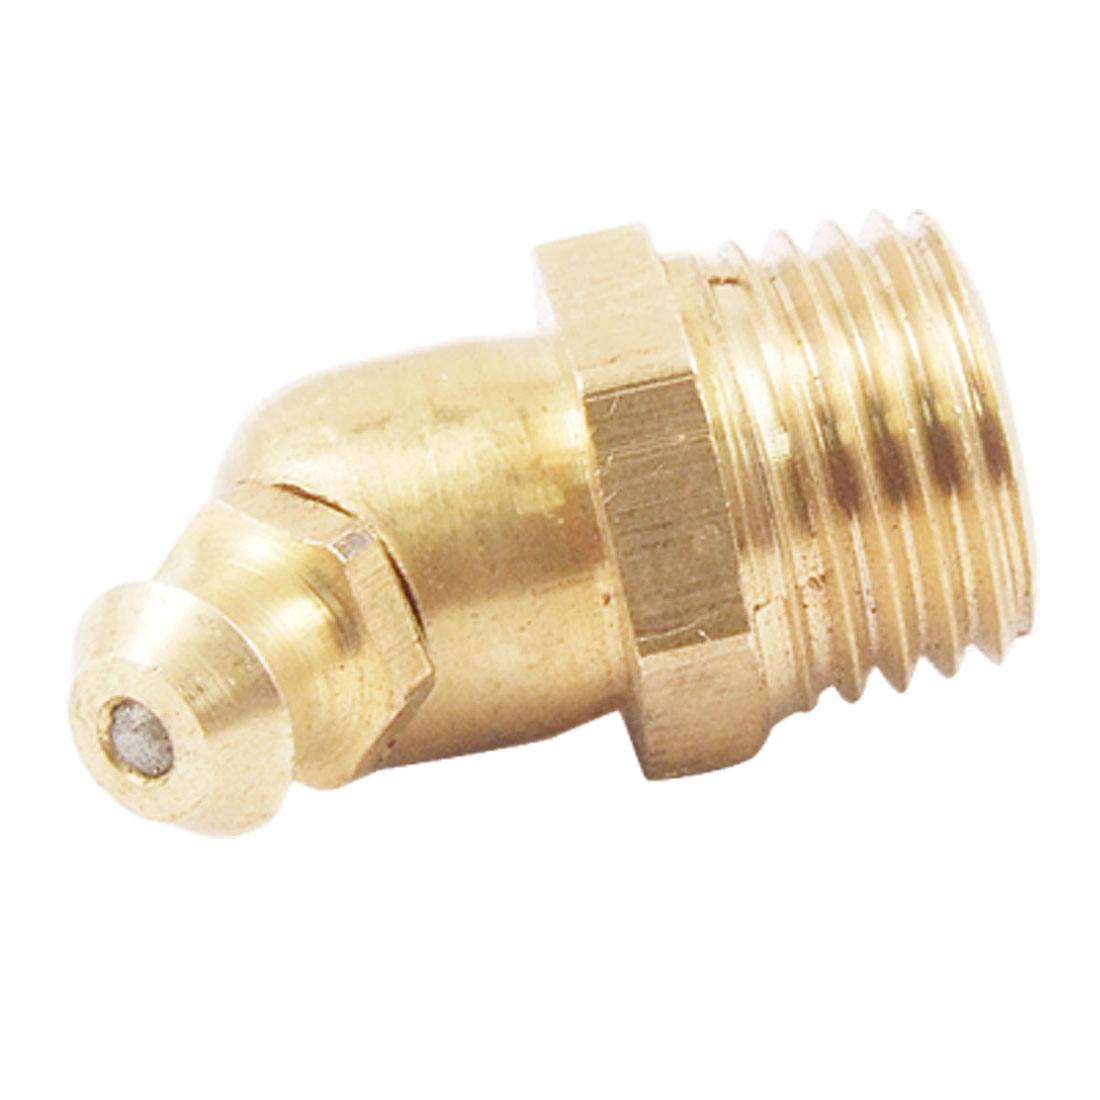 M12 Male Thread 45 Degree Brass Hydraulic Grease Nipple Fitting